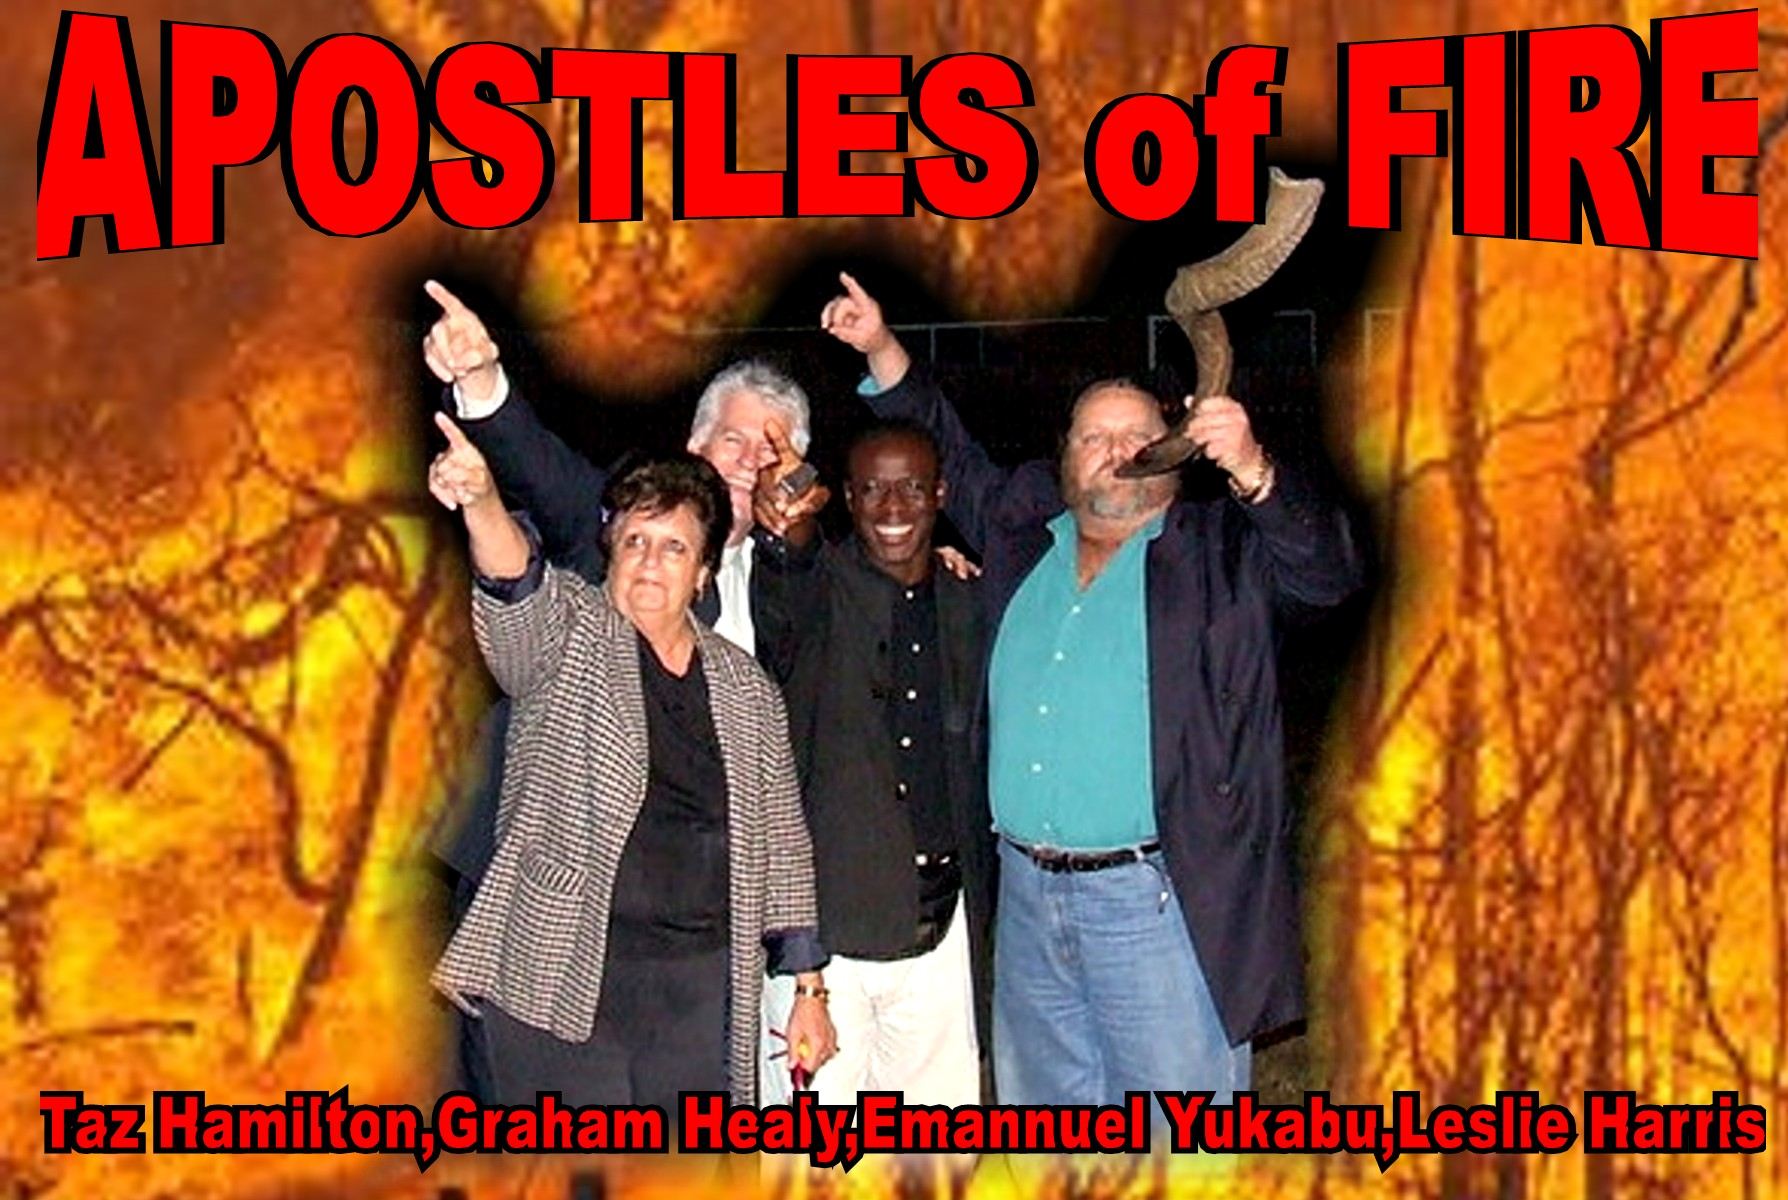 Apostles of FIRE